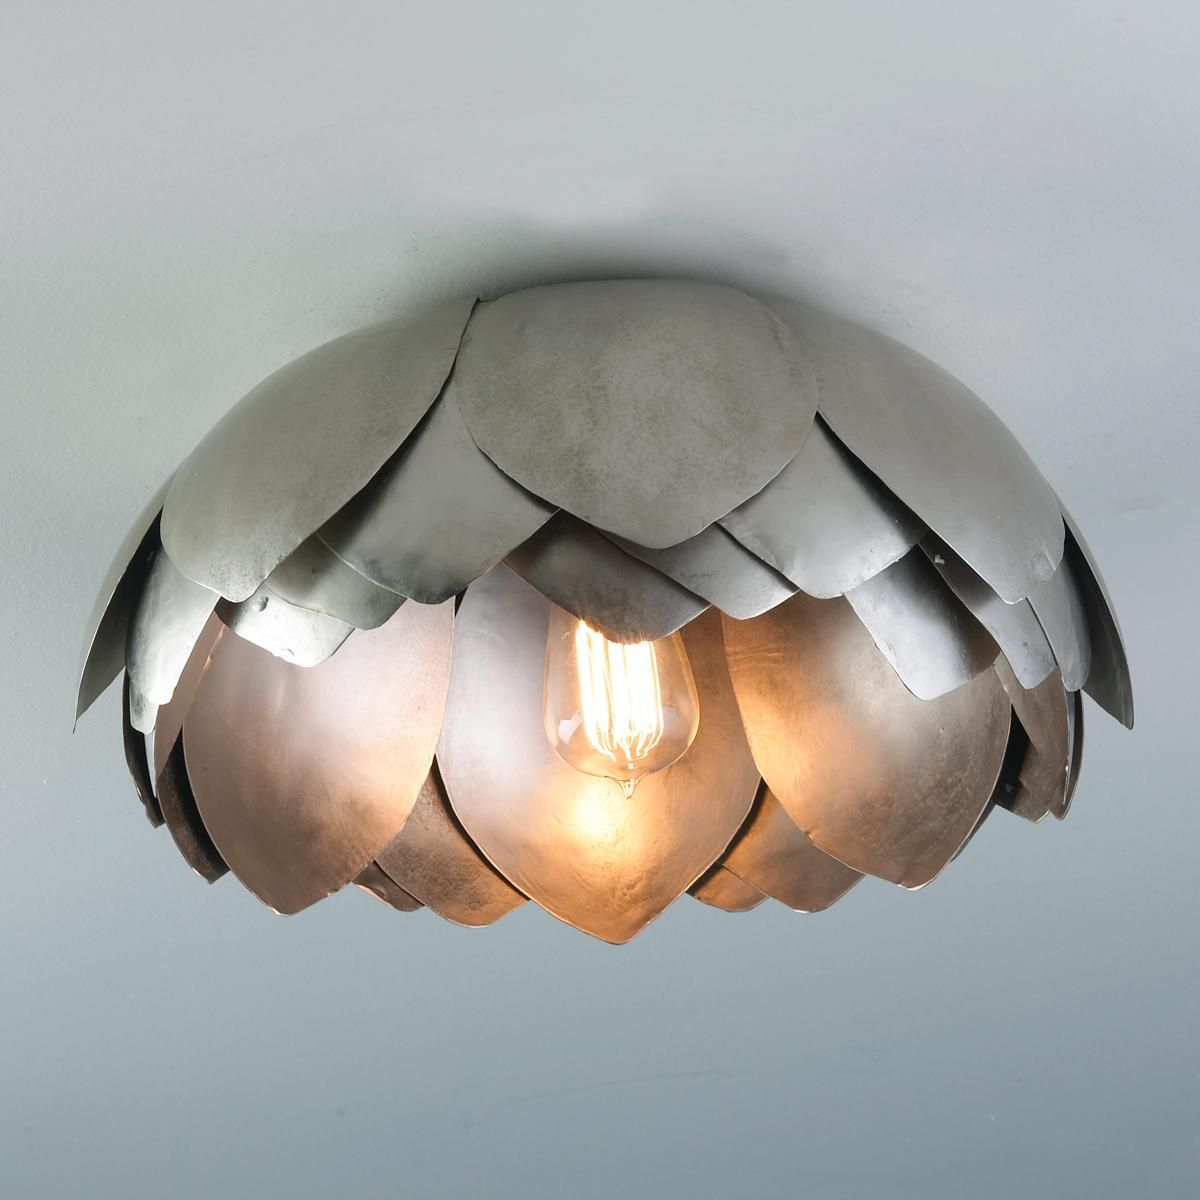 Metal Lotus Flush Mount Ceiling Light For My Living Room Because Husband Knocked Down Our